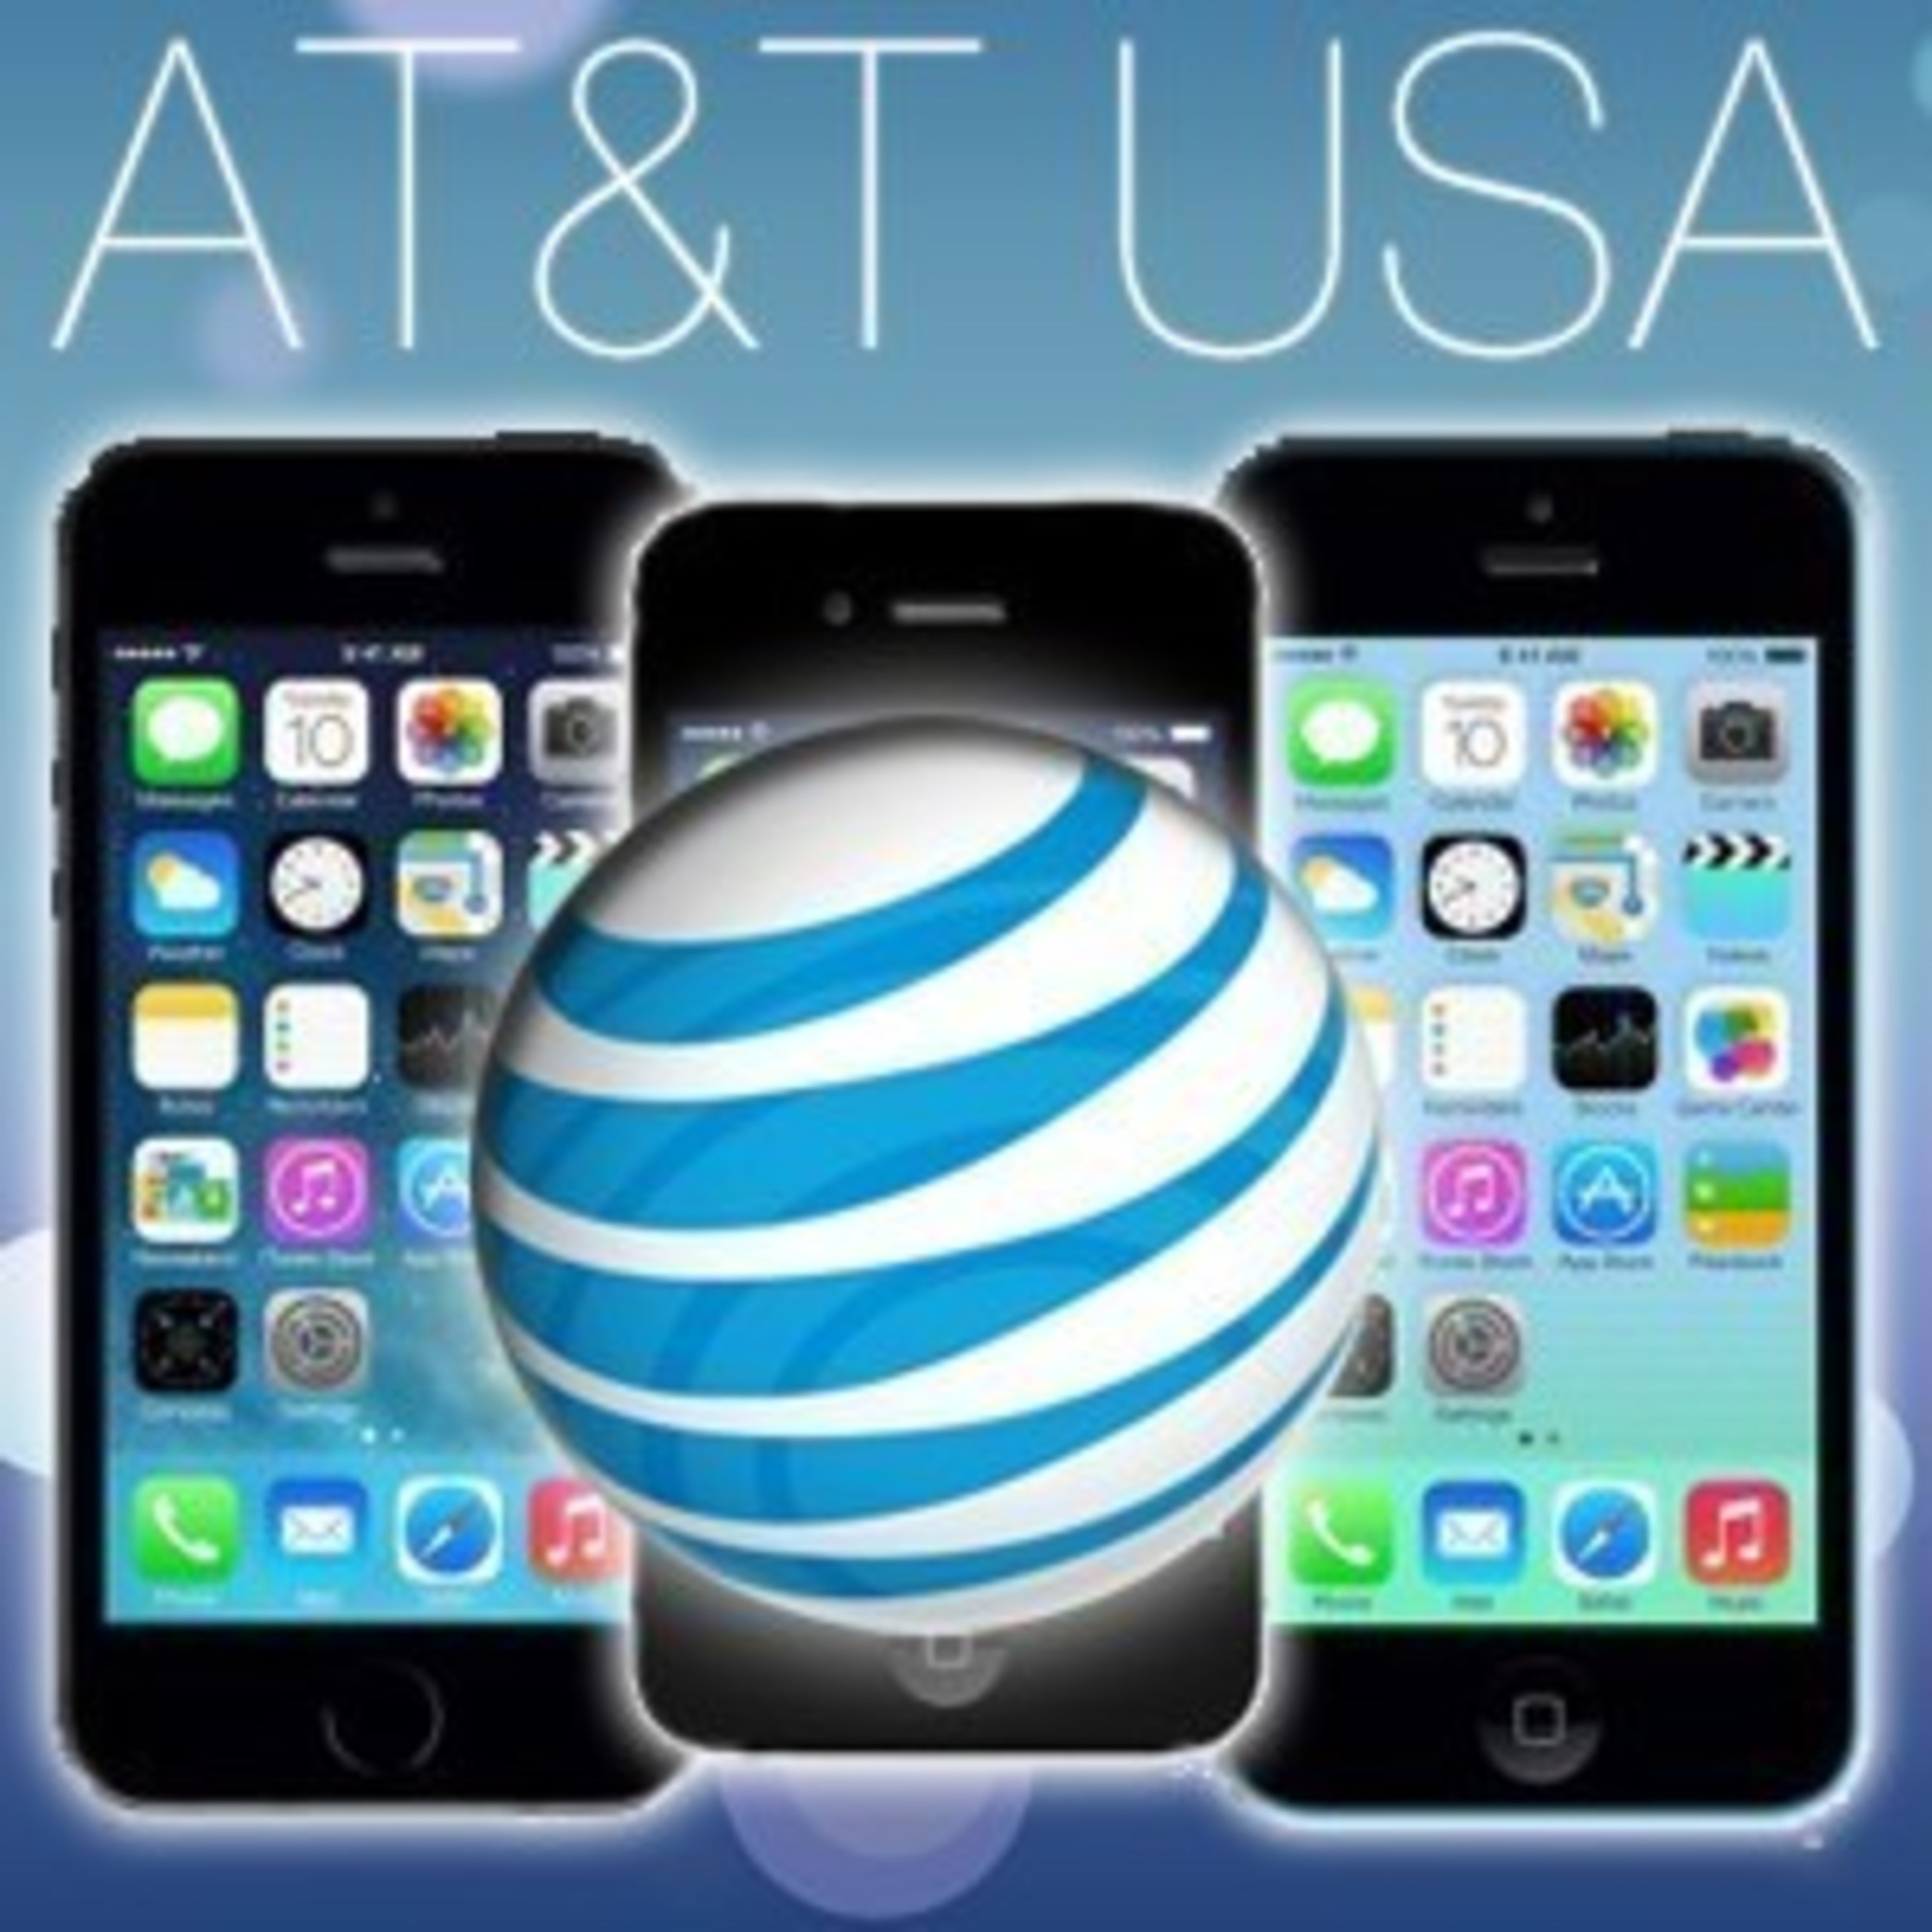 Bypass iCloud Unlock for iPhone 4S, 5, 5C, 5S and 6 (+) on AT&T, T-Mobile, Sprint and Boost Mobile